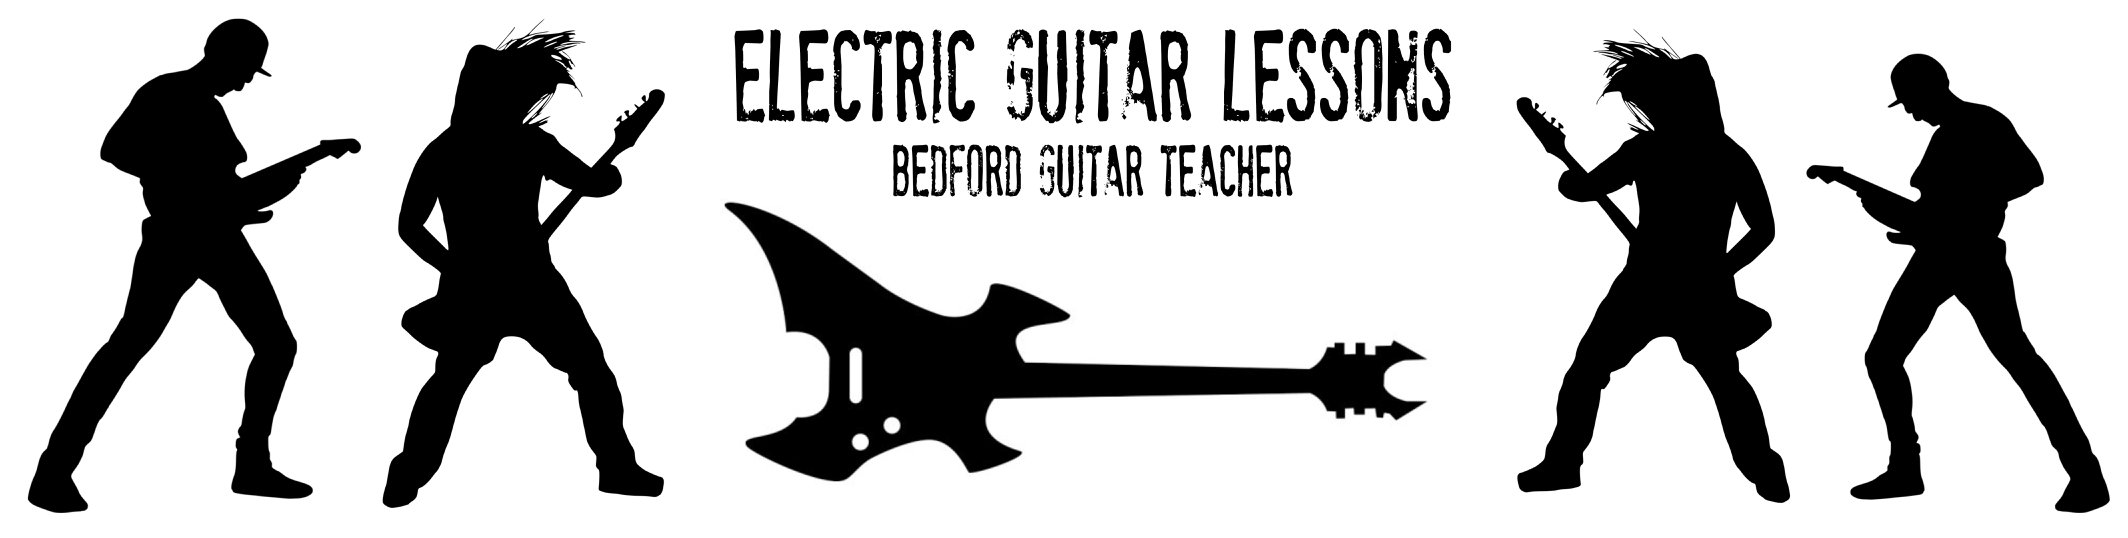 Bedford Electric Guitar lesson